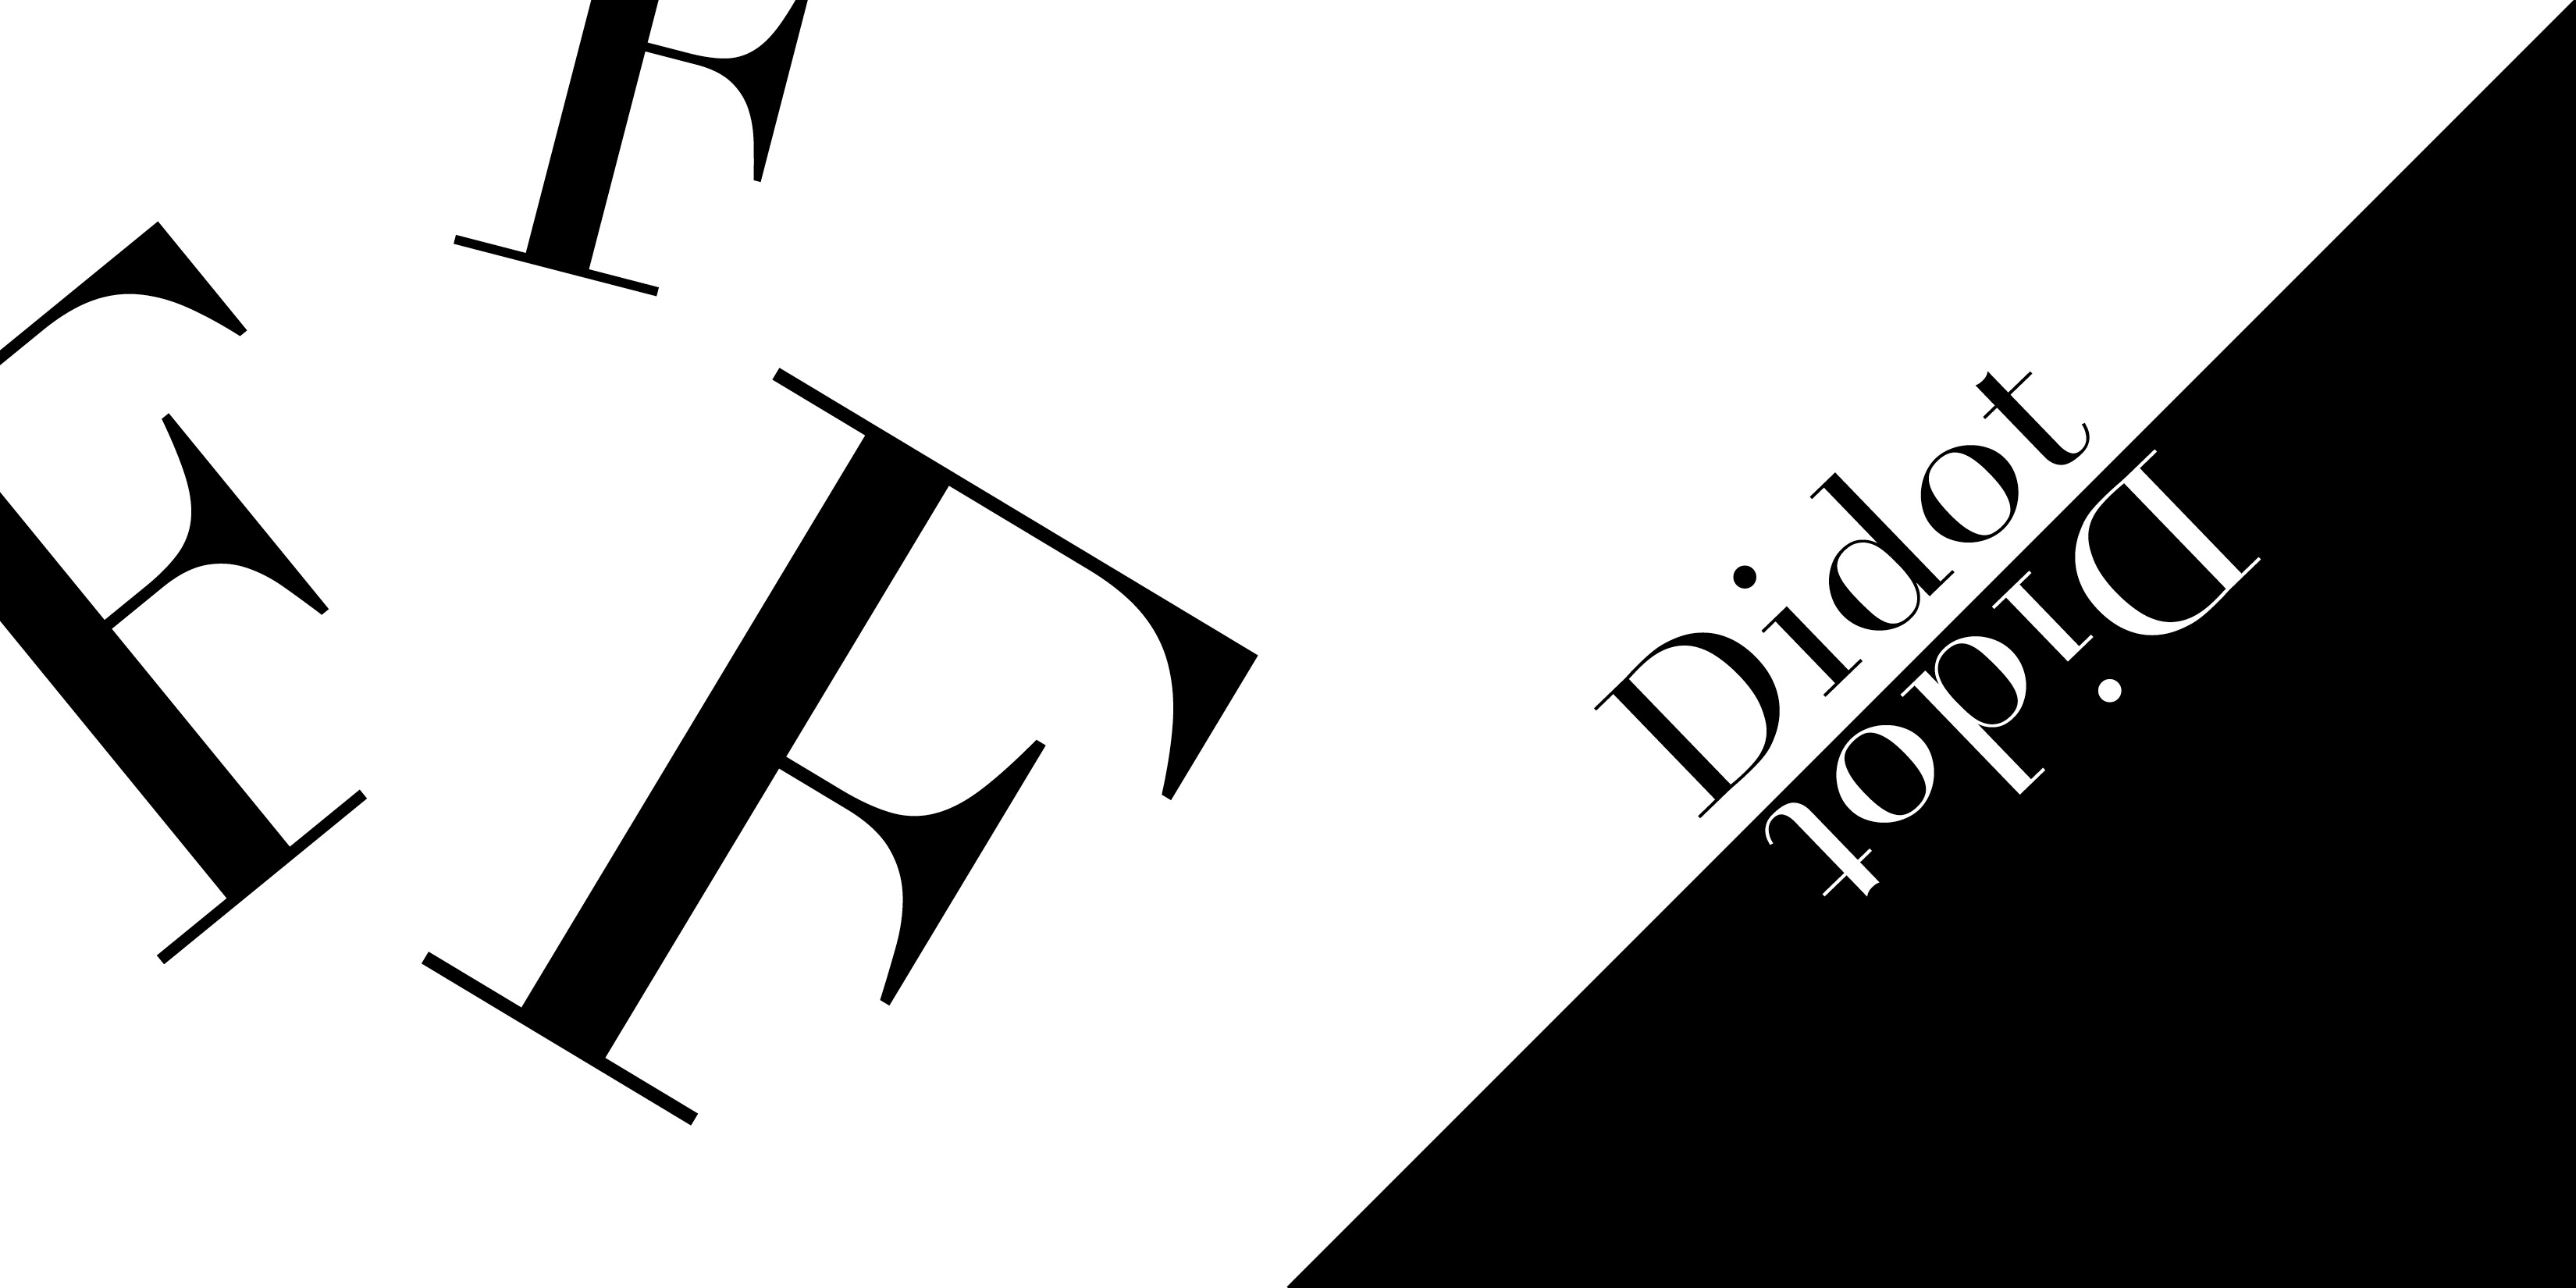 Didot Typeface Jack Bauer8